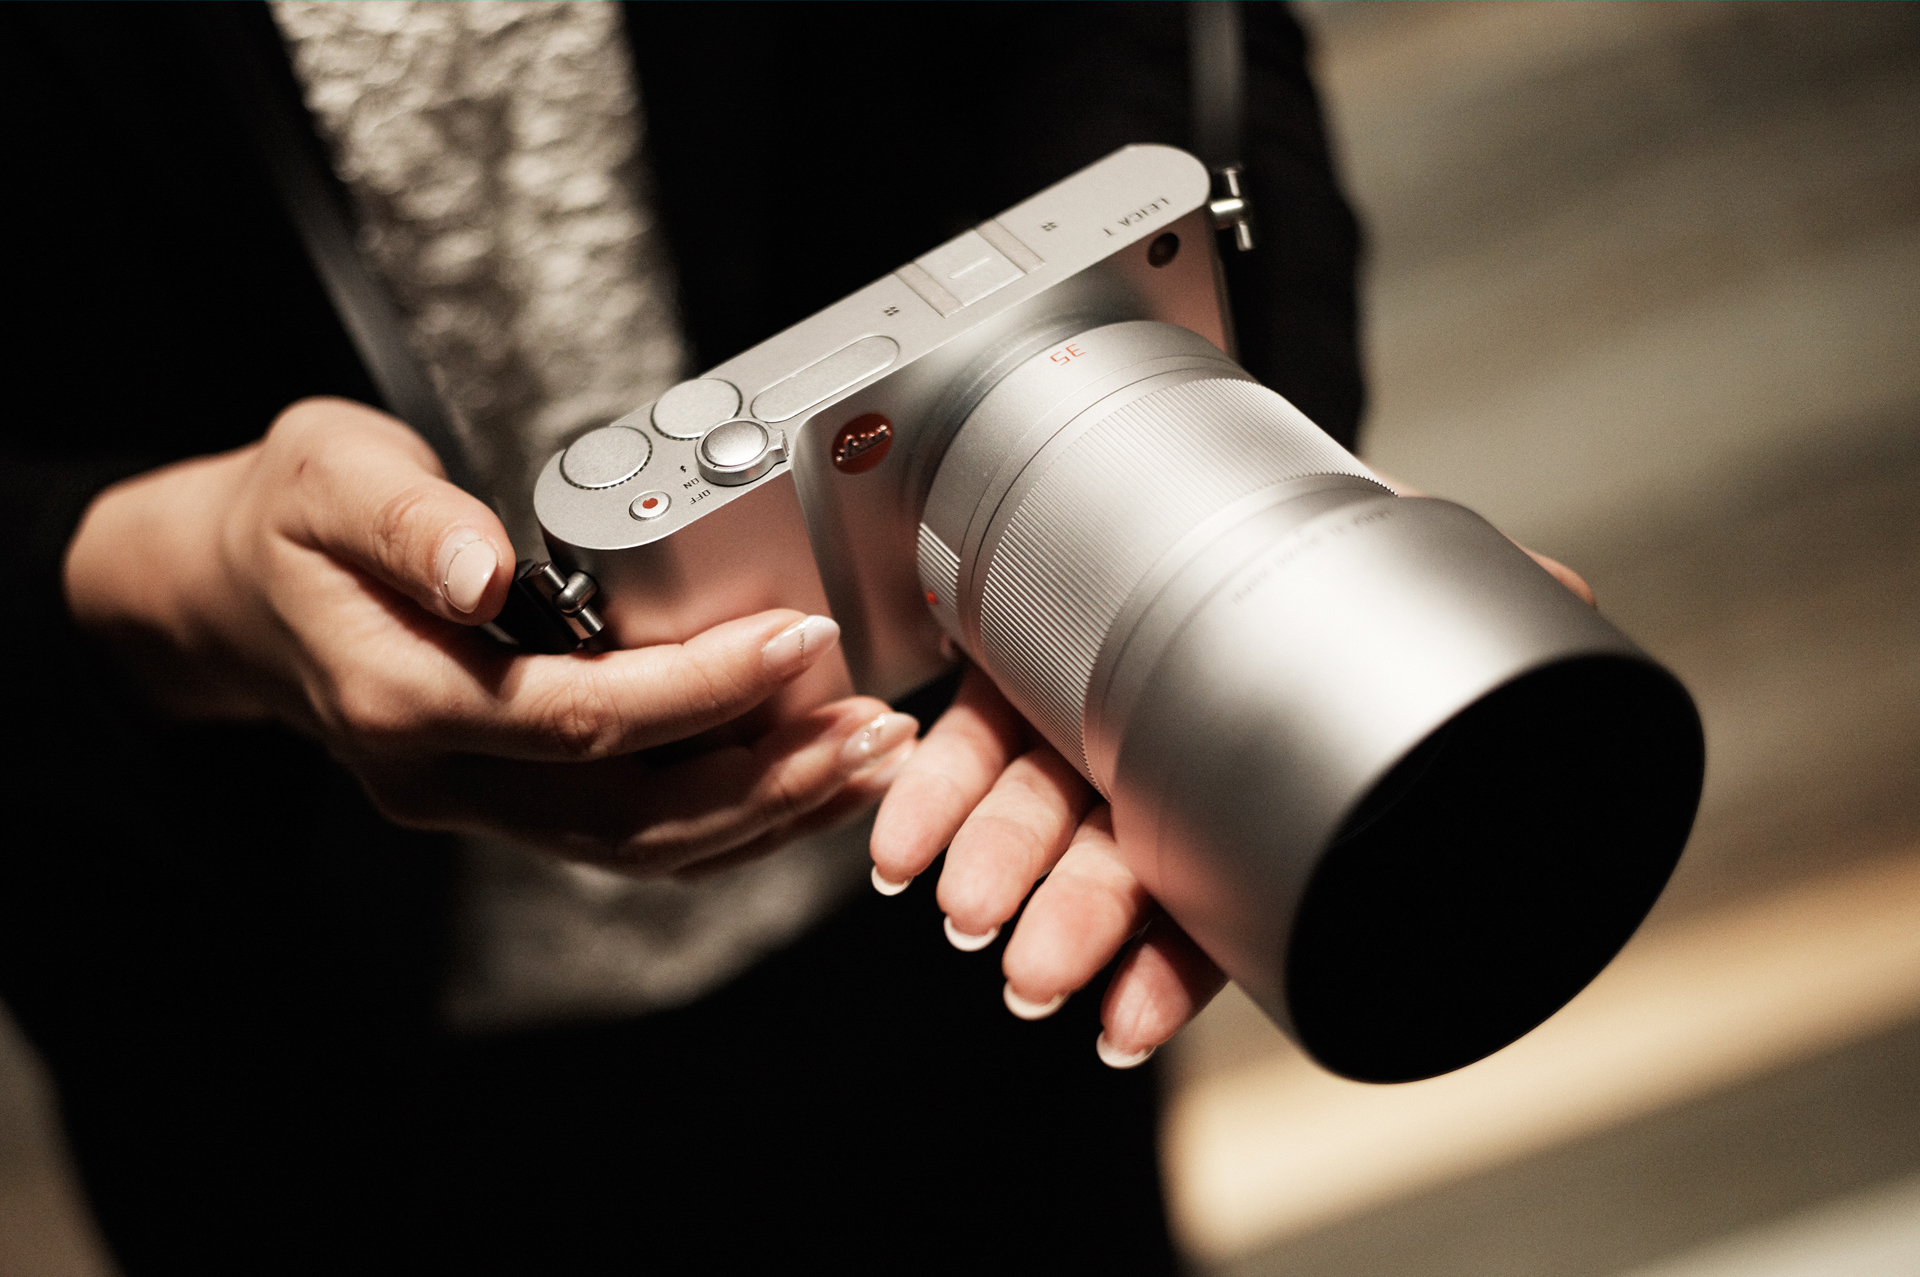 Leica X-U: The Toughest Leica Camera Yet